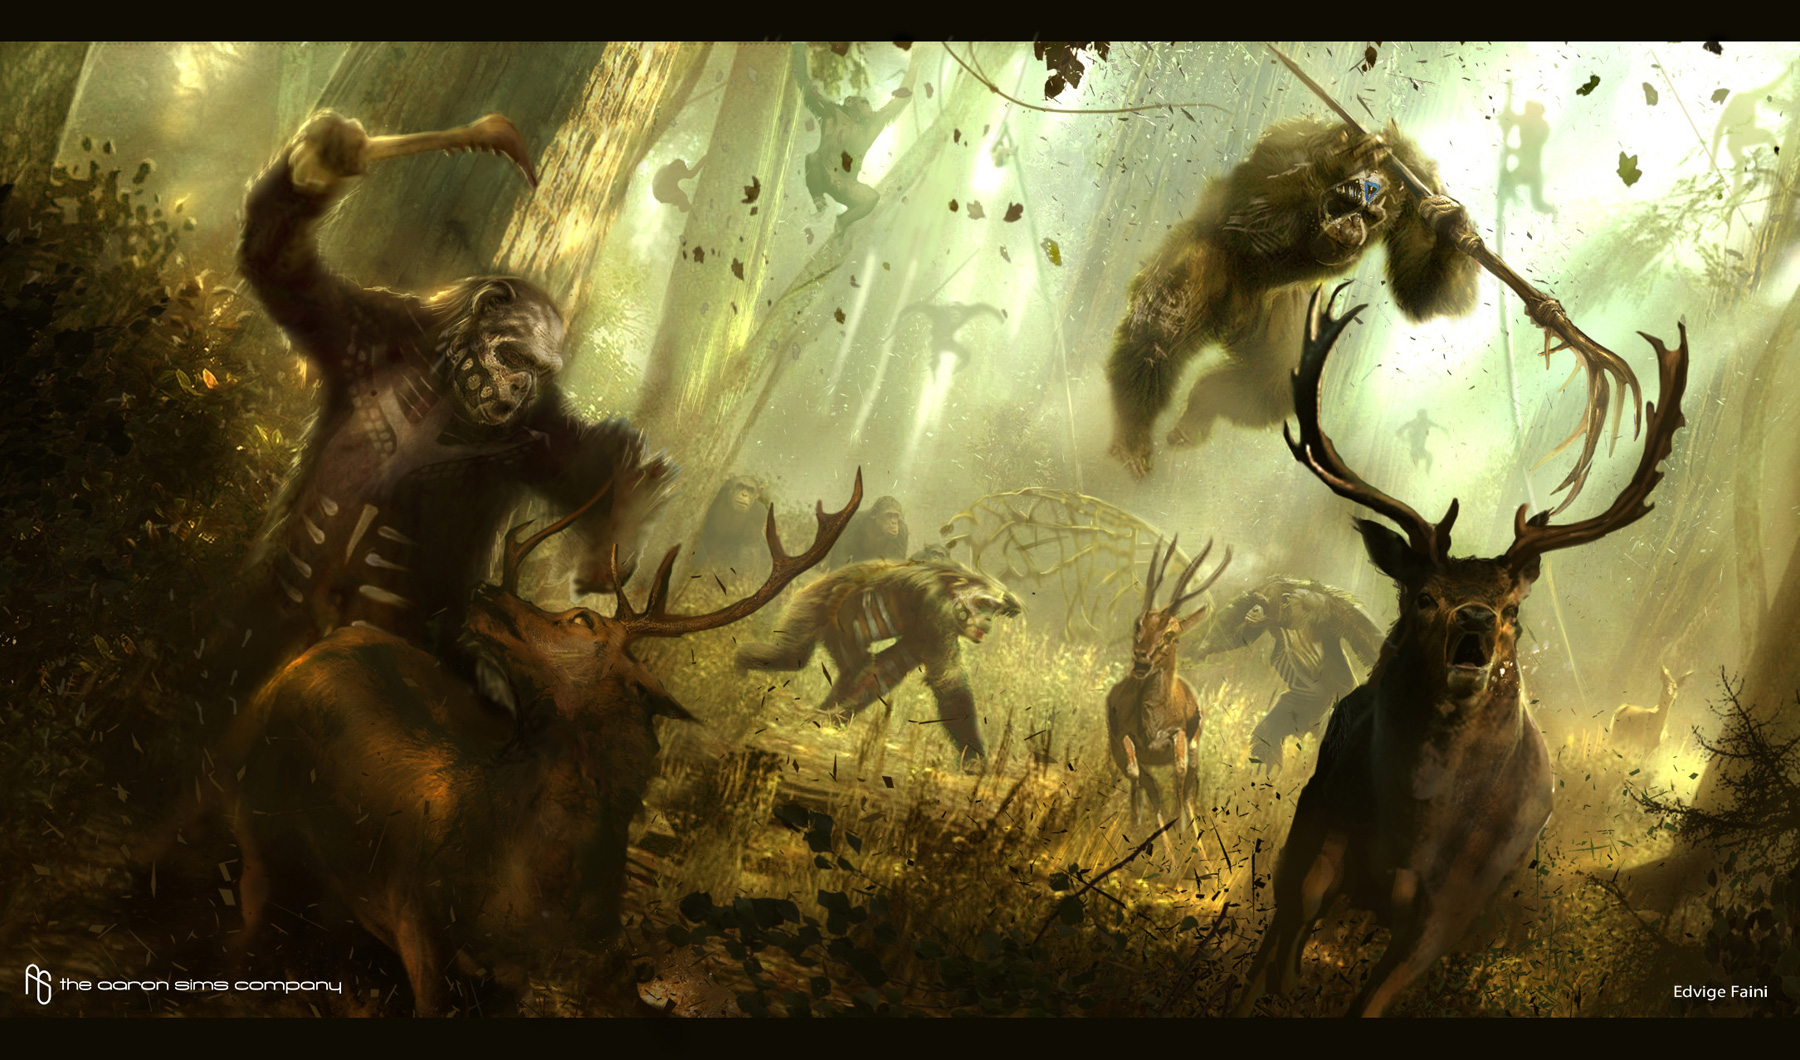 dawn of the planet of the apes concept art by the aaron sims